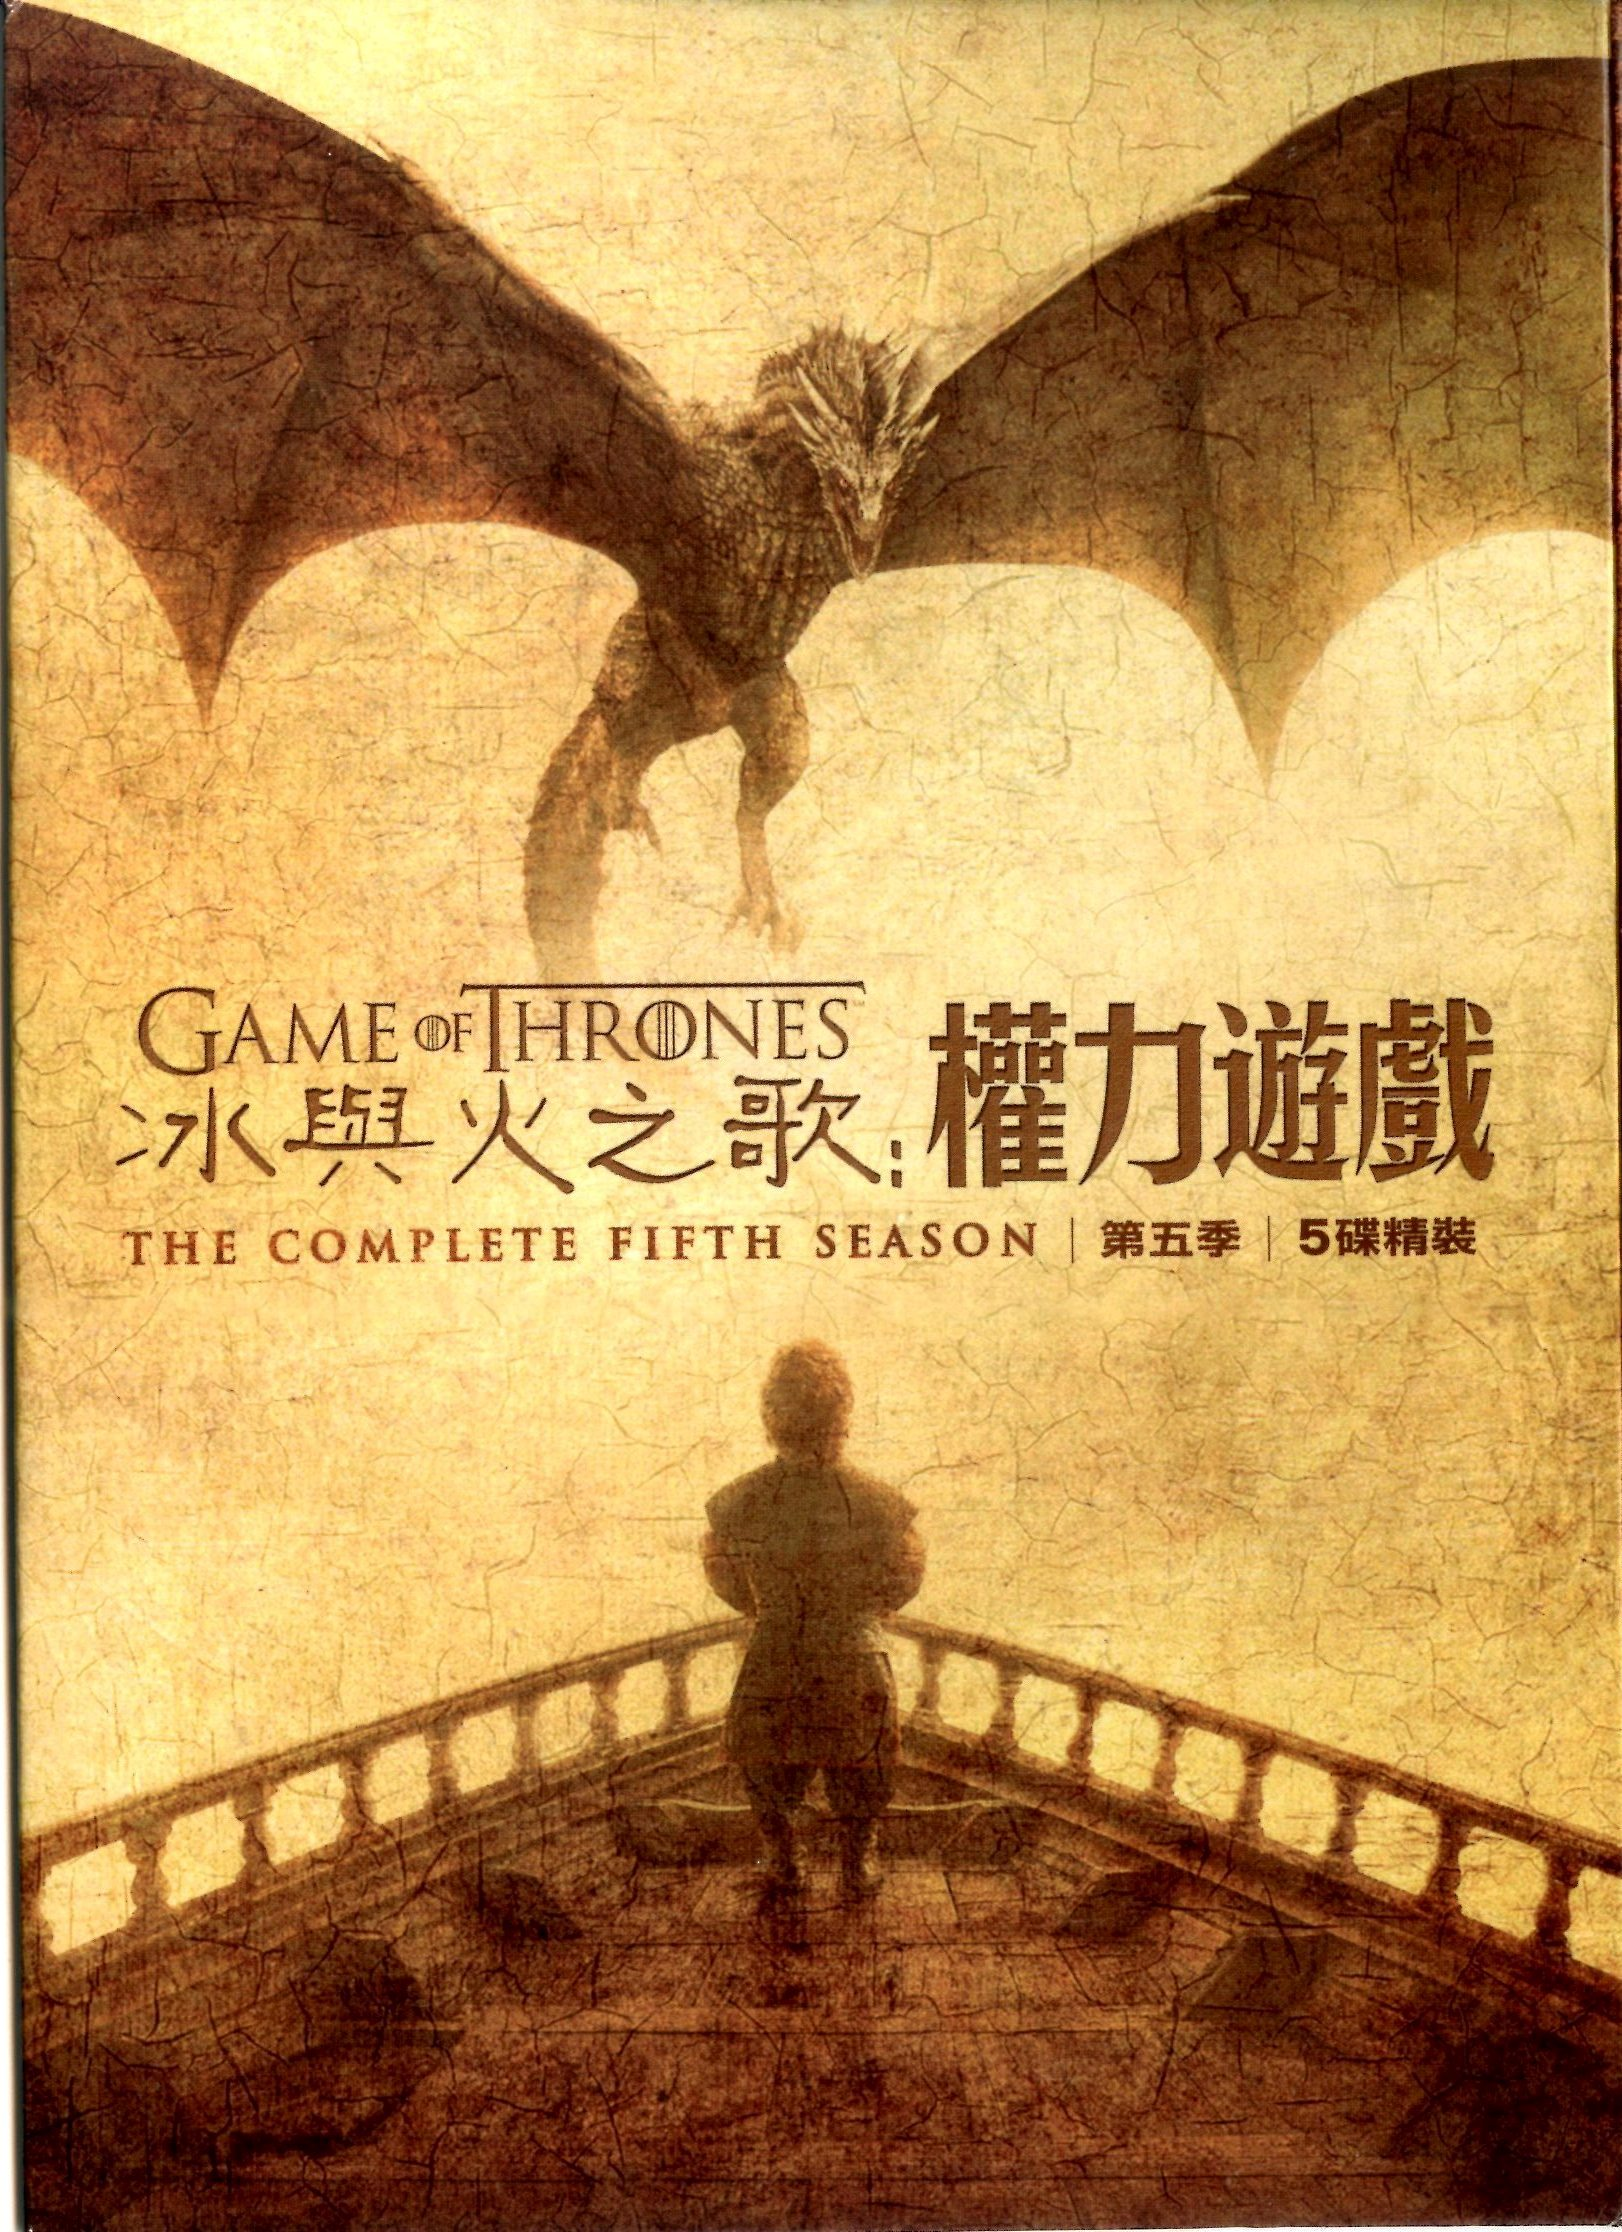 Game of thrones(家用版) the complete fifth season = 冰與火之歌 : 權力遊戲. 第五季